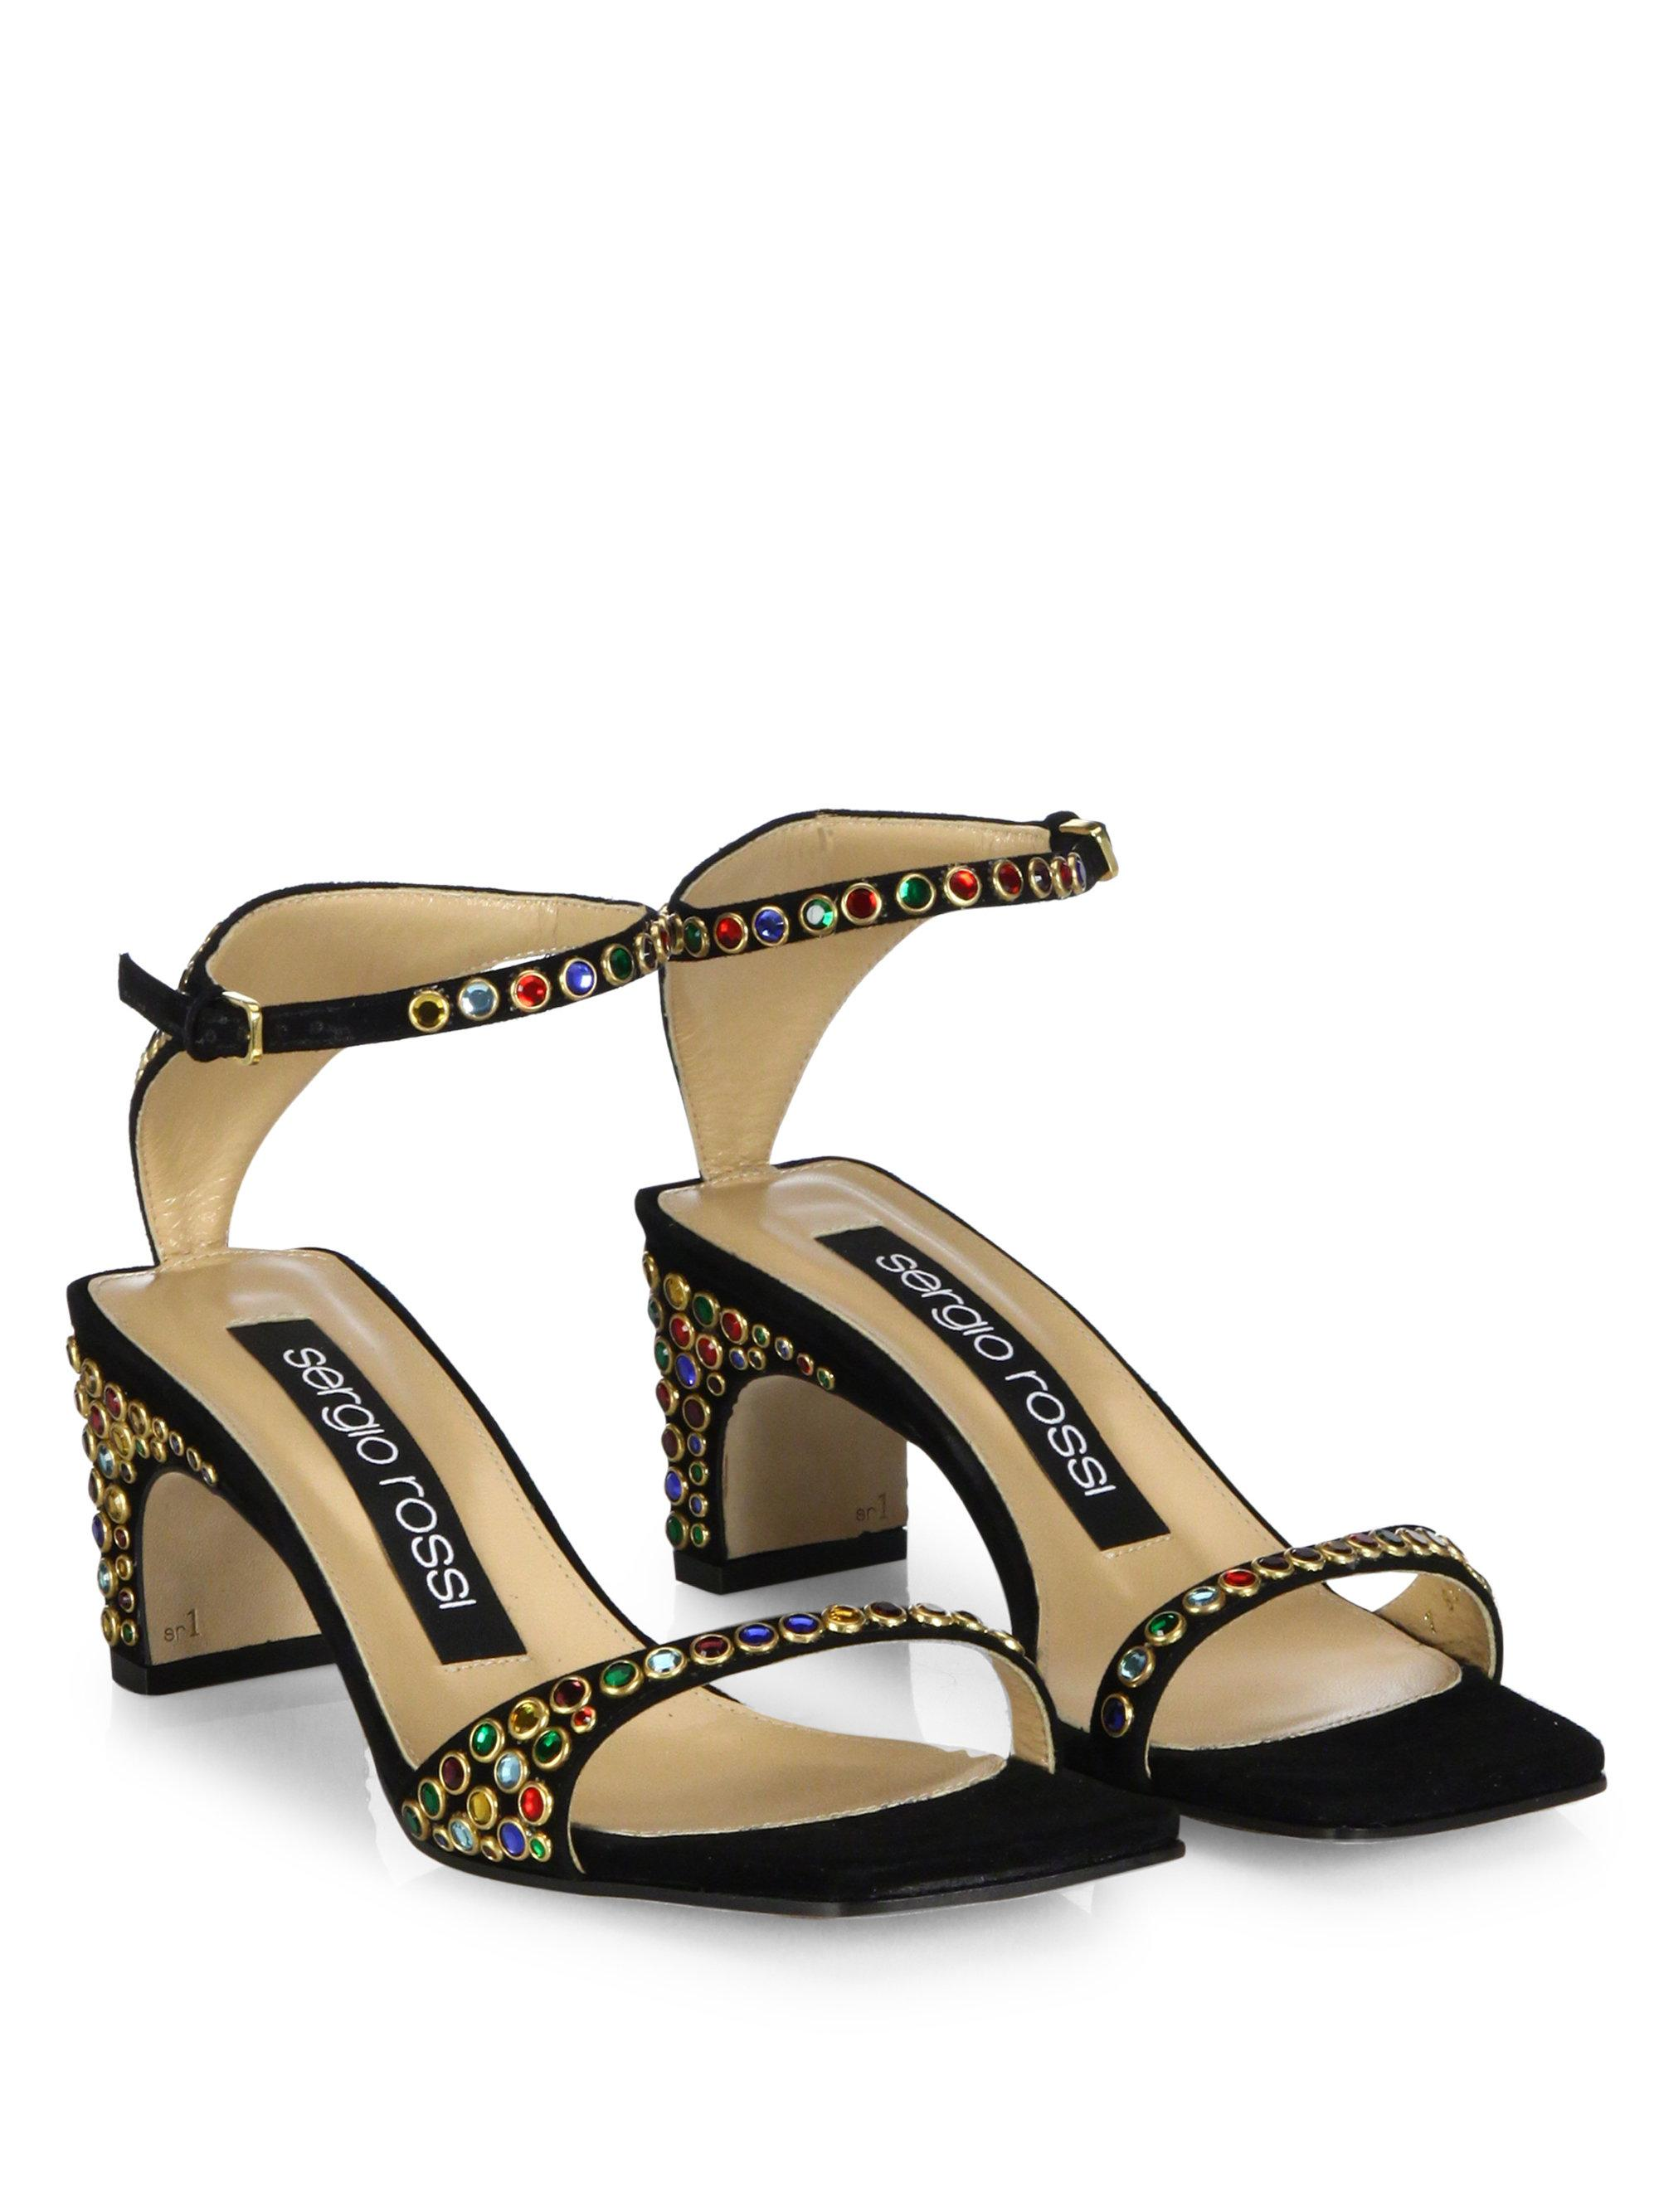 Sergio Rossi. Women's Black Sr1 Jeweled Suede Ankle-strap Sandals